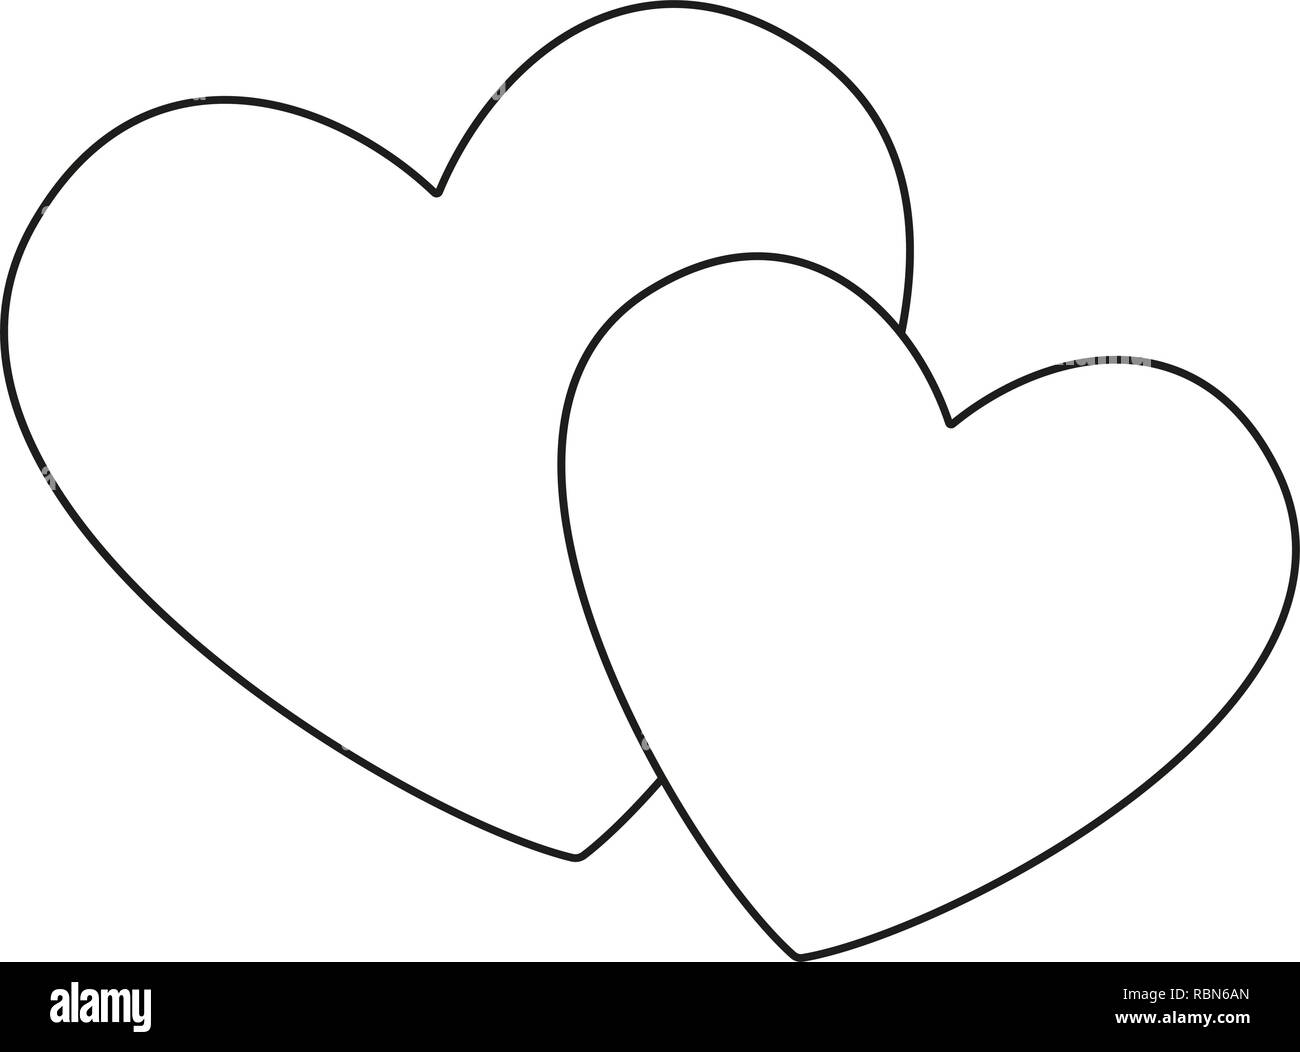 Line art black and white pair of loving hearts - Stock Image